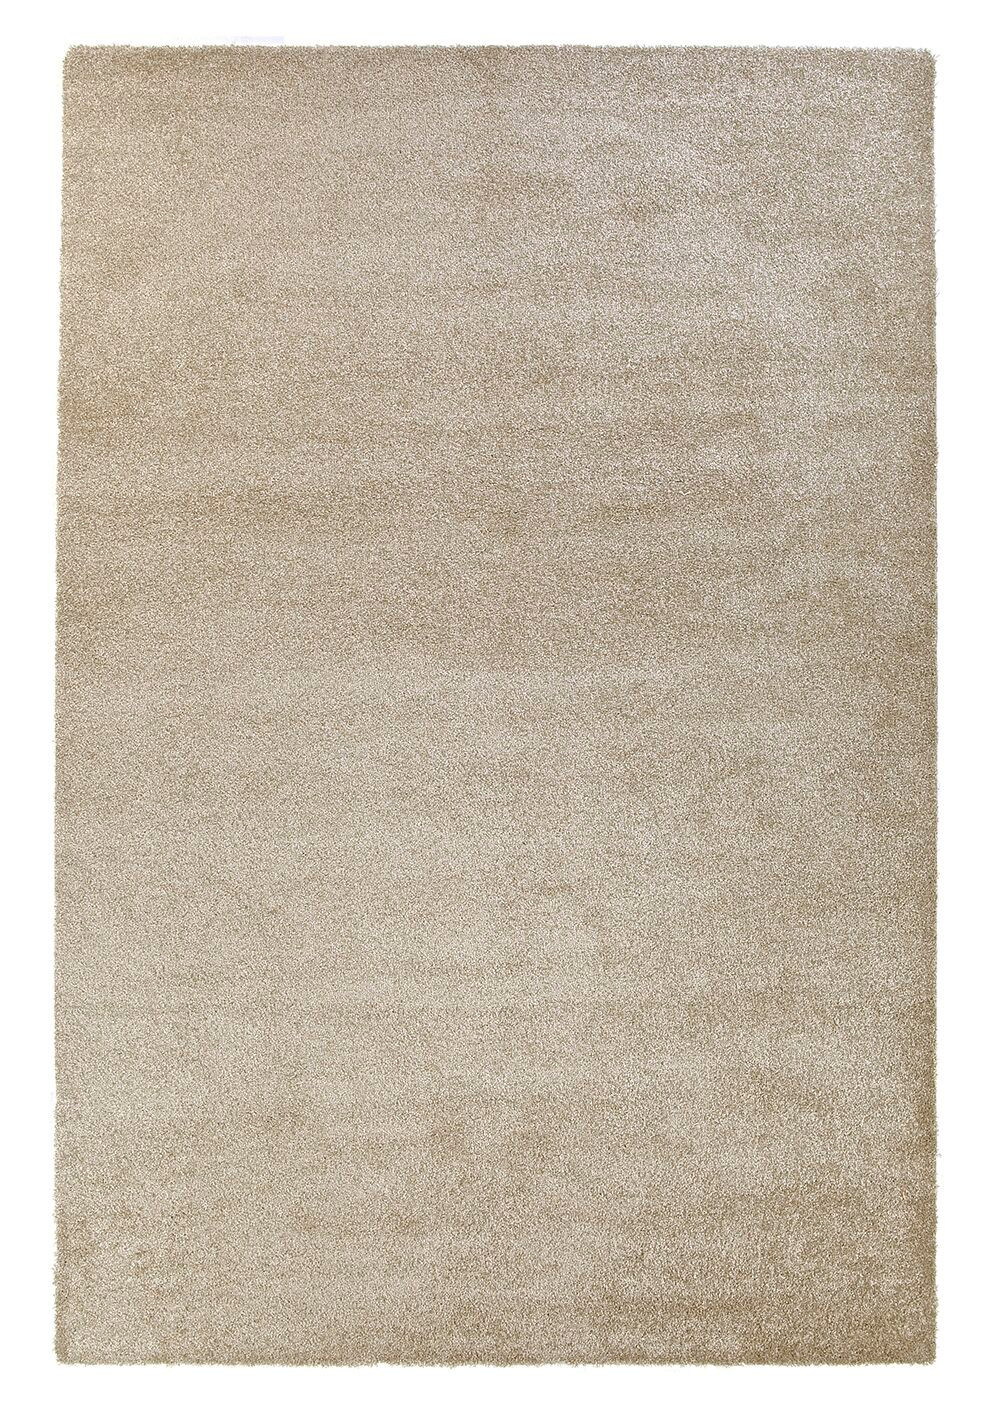 VM Carpet Elysee matto 60 beige